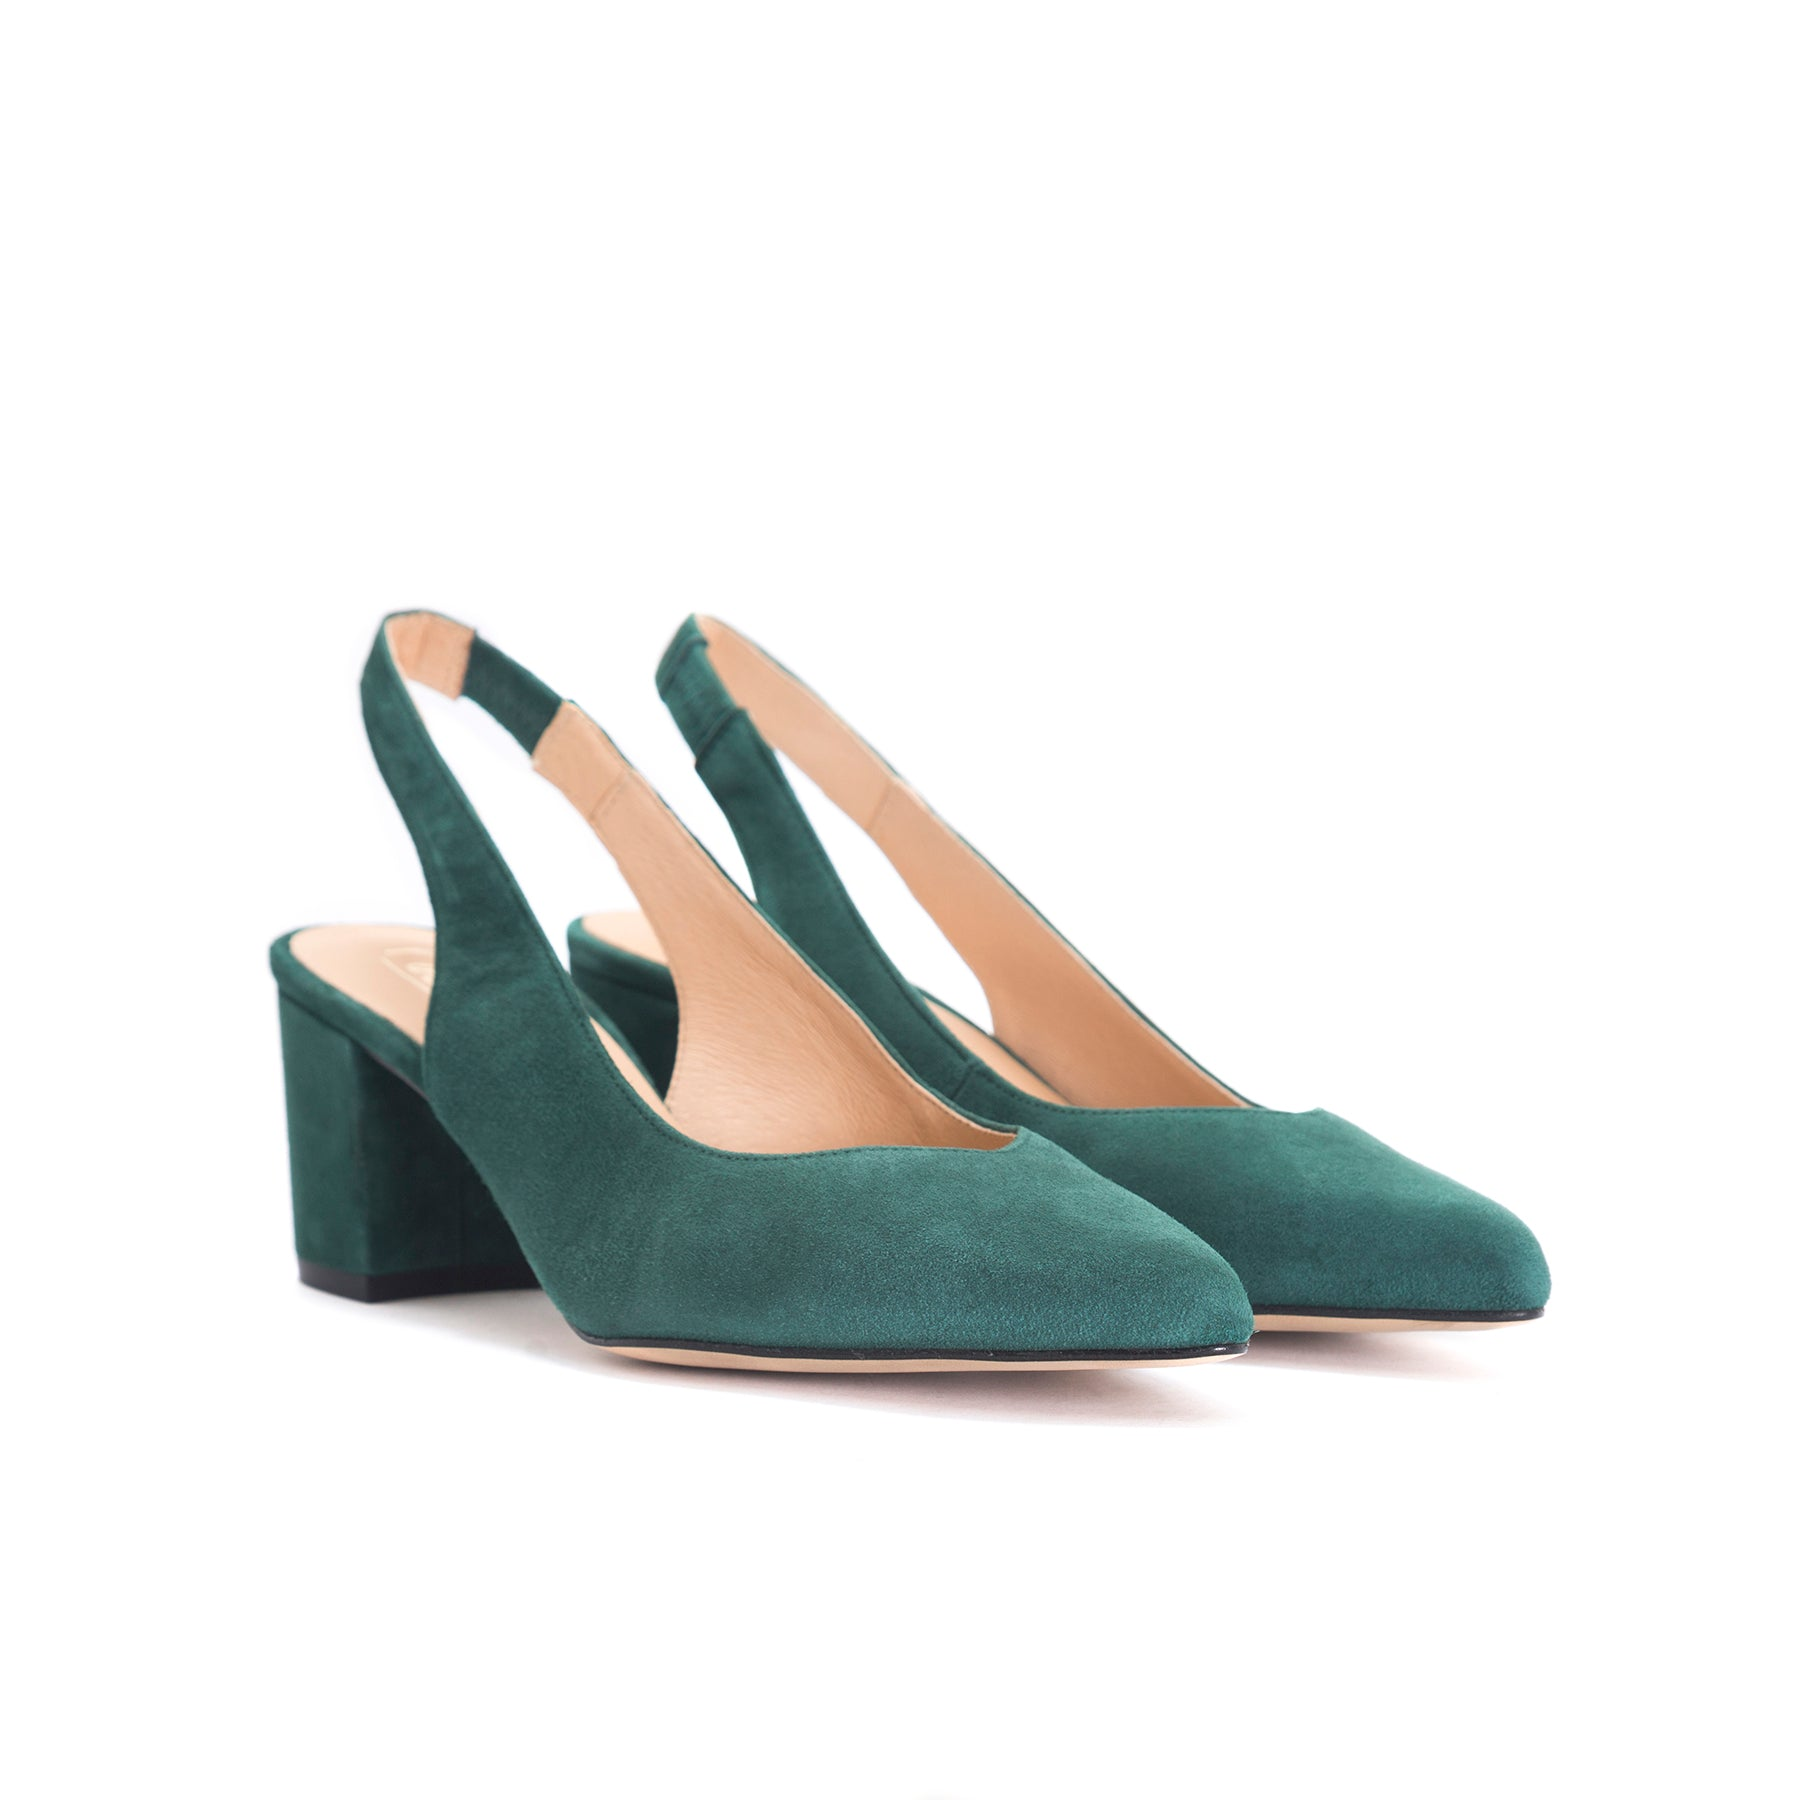 Vereda Green Suede Pumps